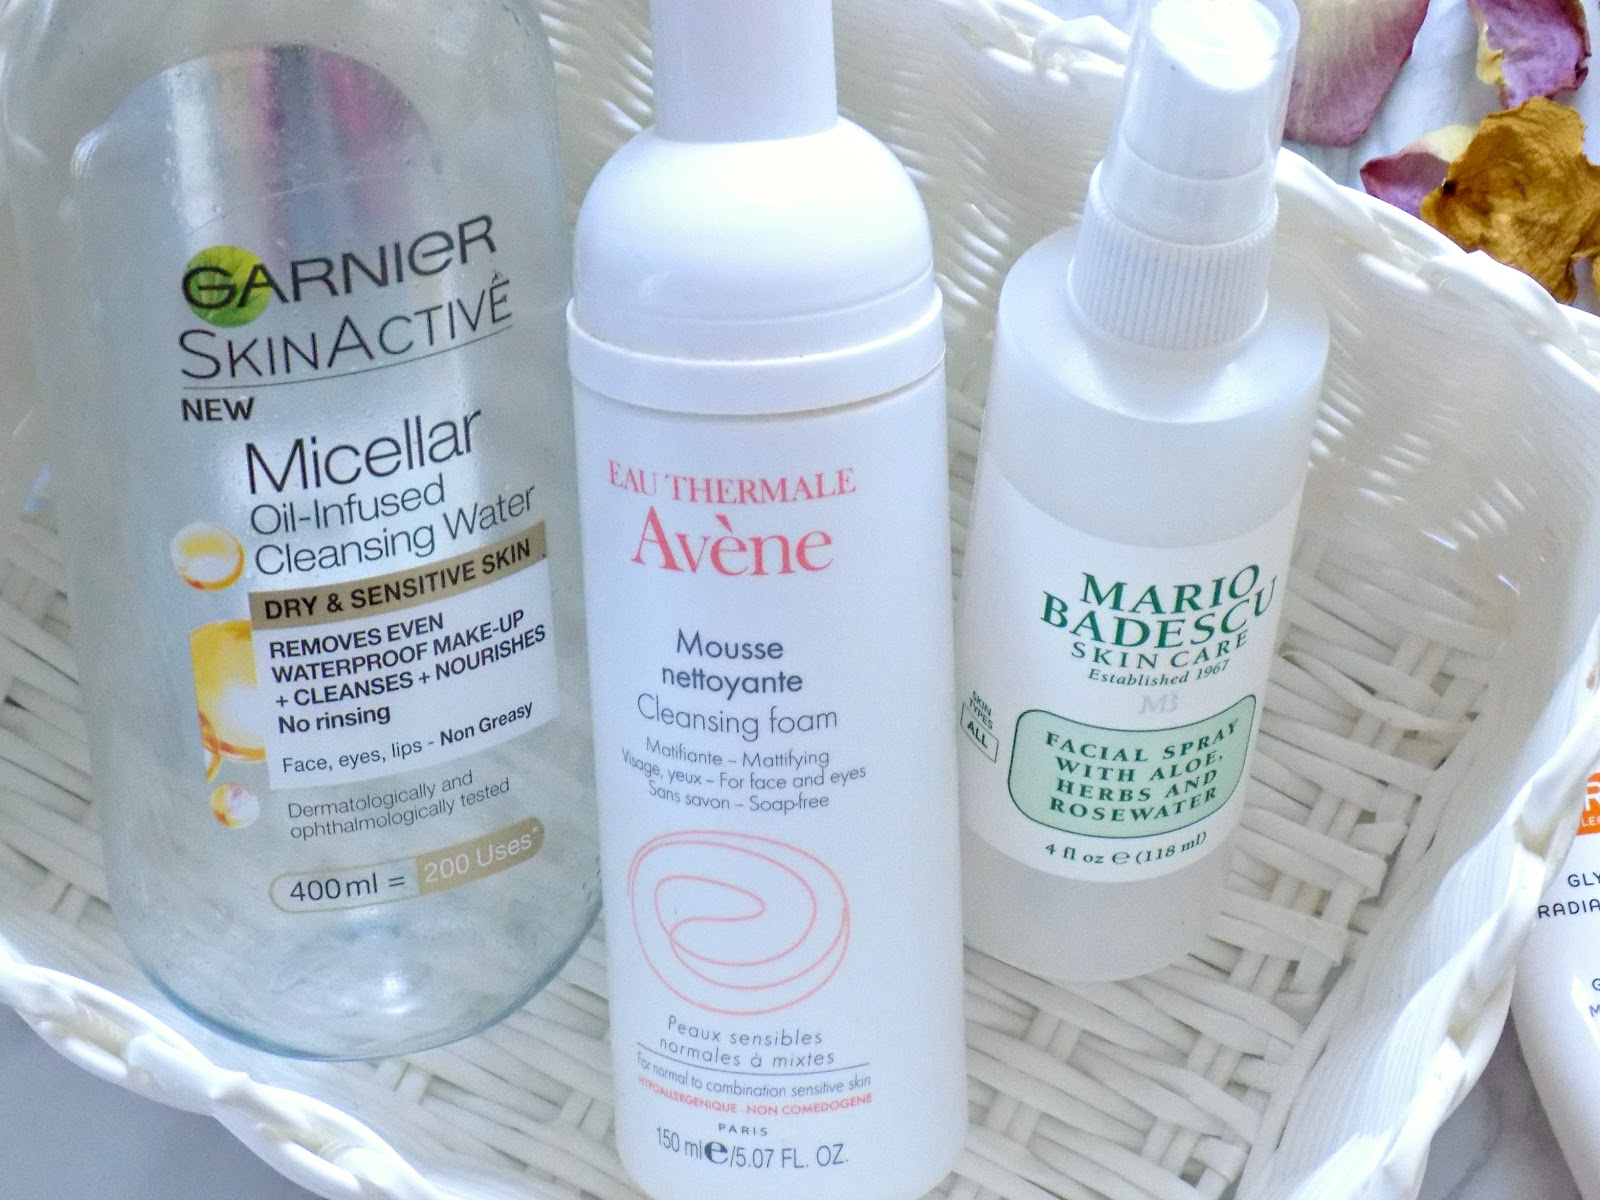 Garnier Oil-Infused Micellar Water, Mario Badescu Facial Spray